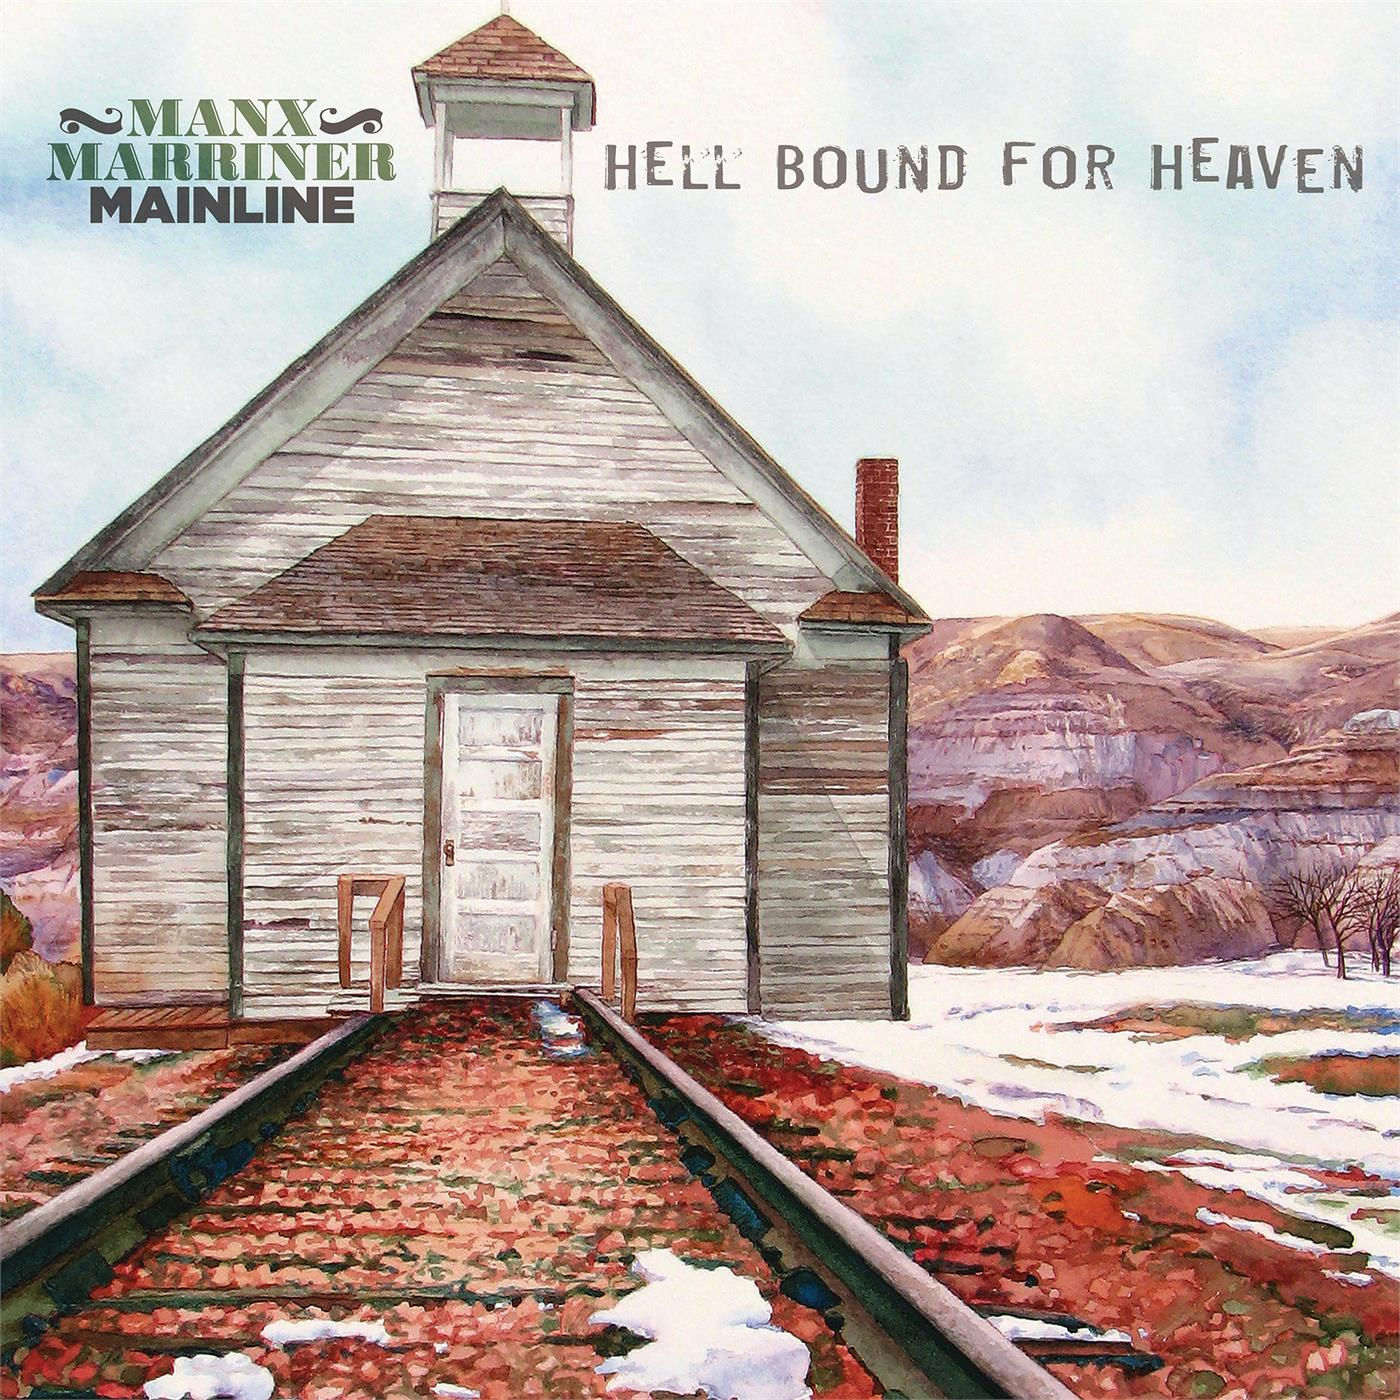 SPLP1404 Stony Plain  Harry Manx & Steve Marriner-Mainline Hell Bound For Heaven (LP)